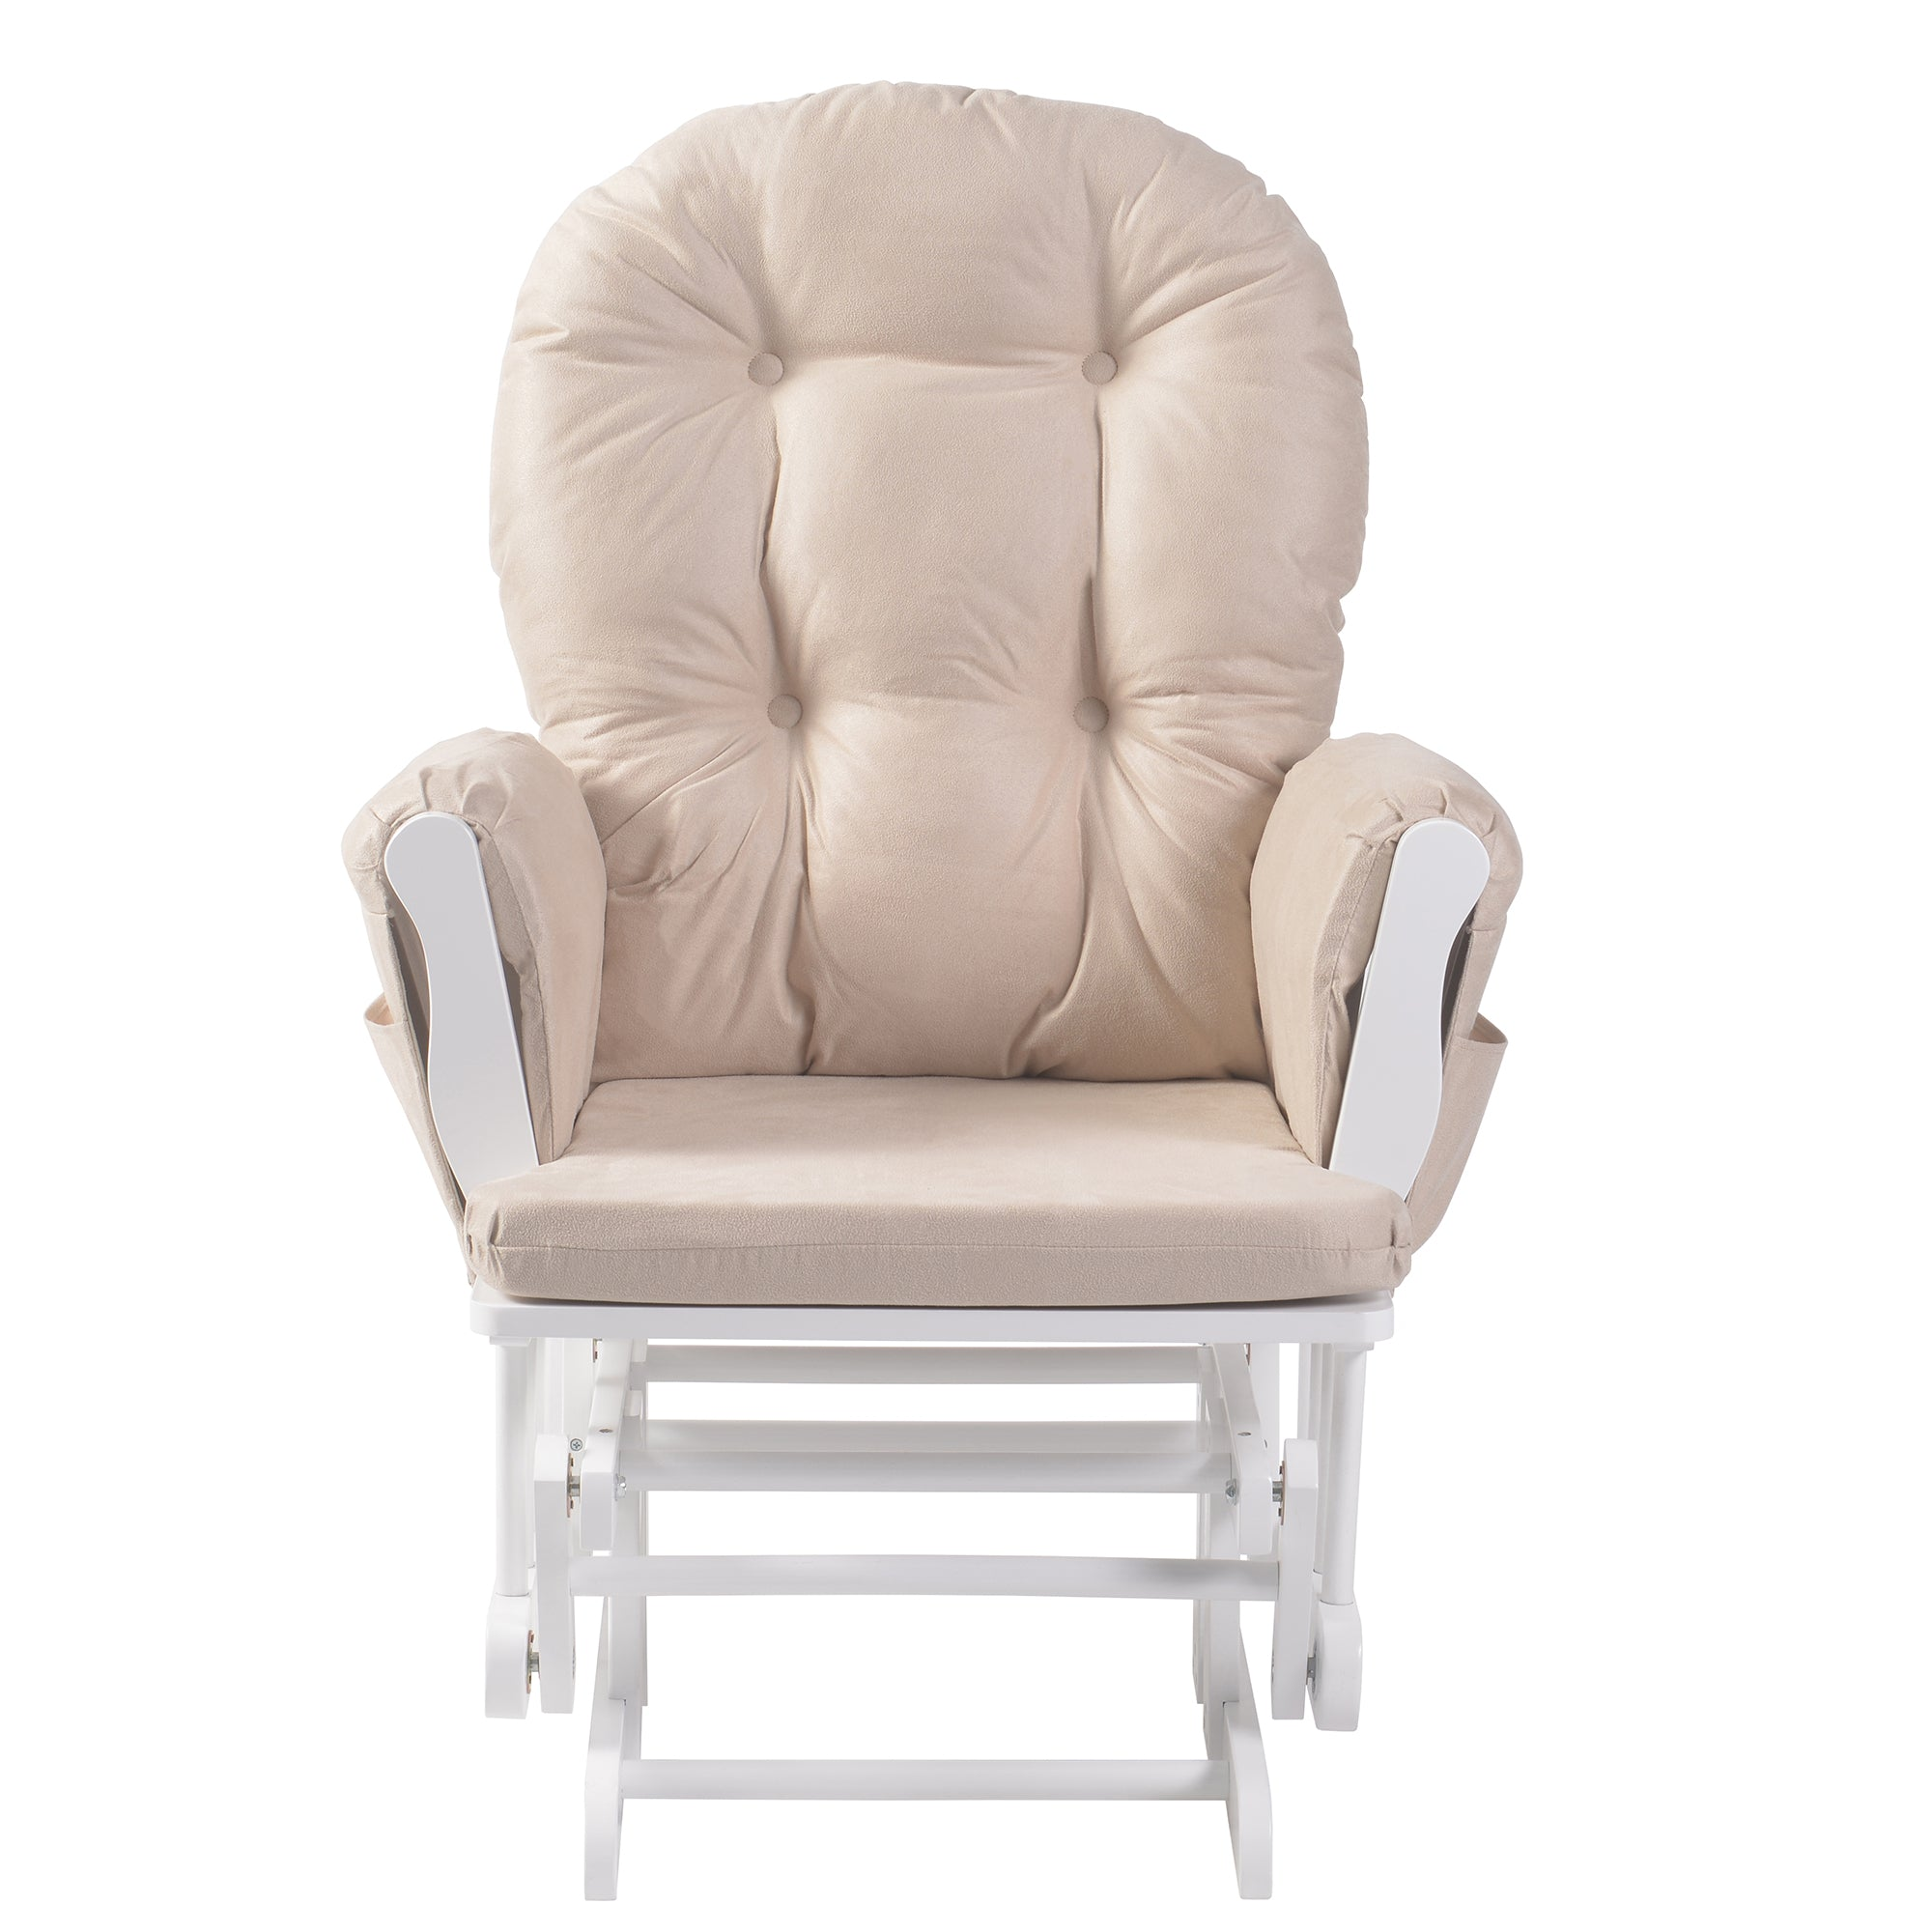 Haywood Nursing Chair